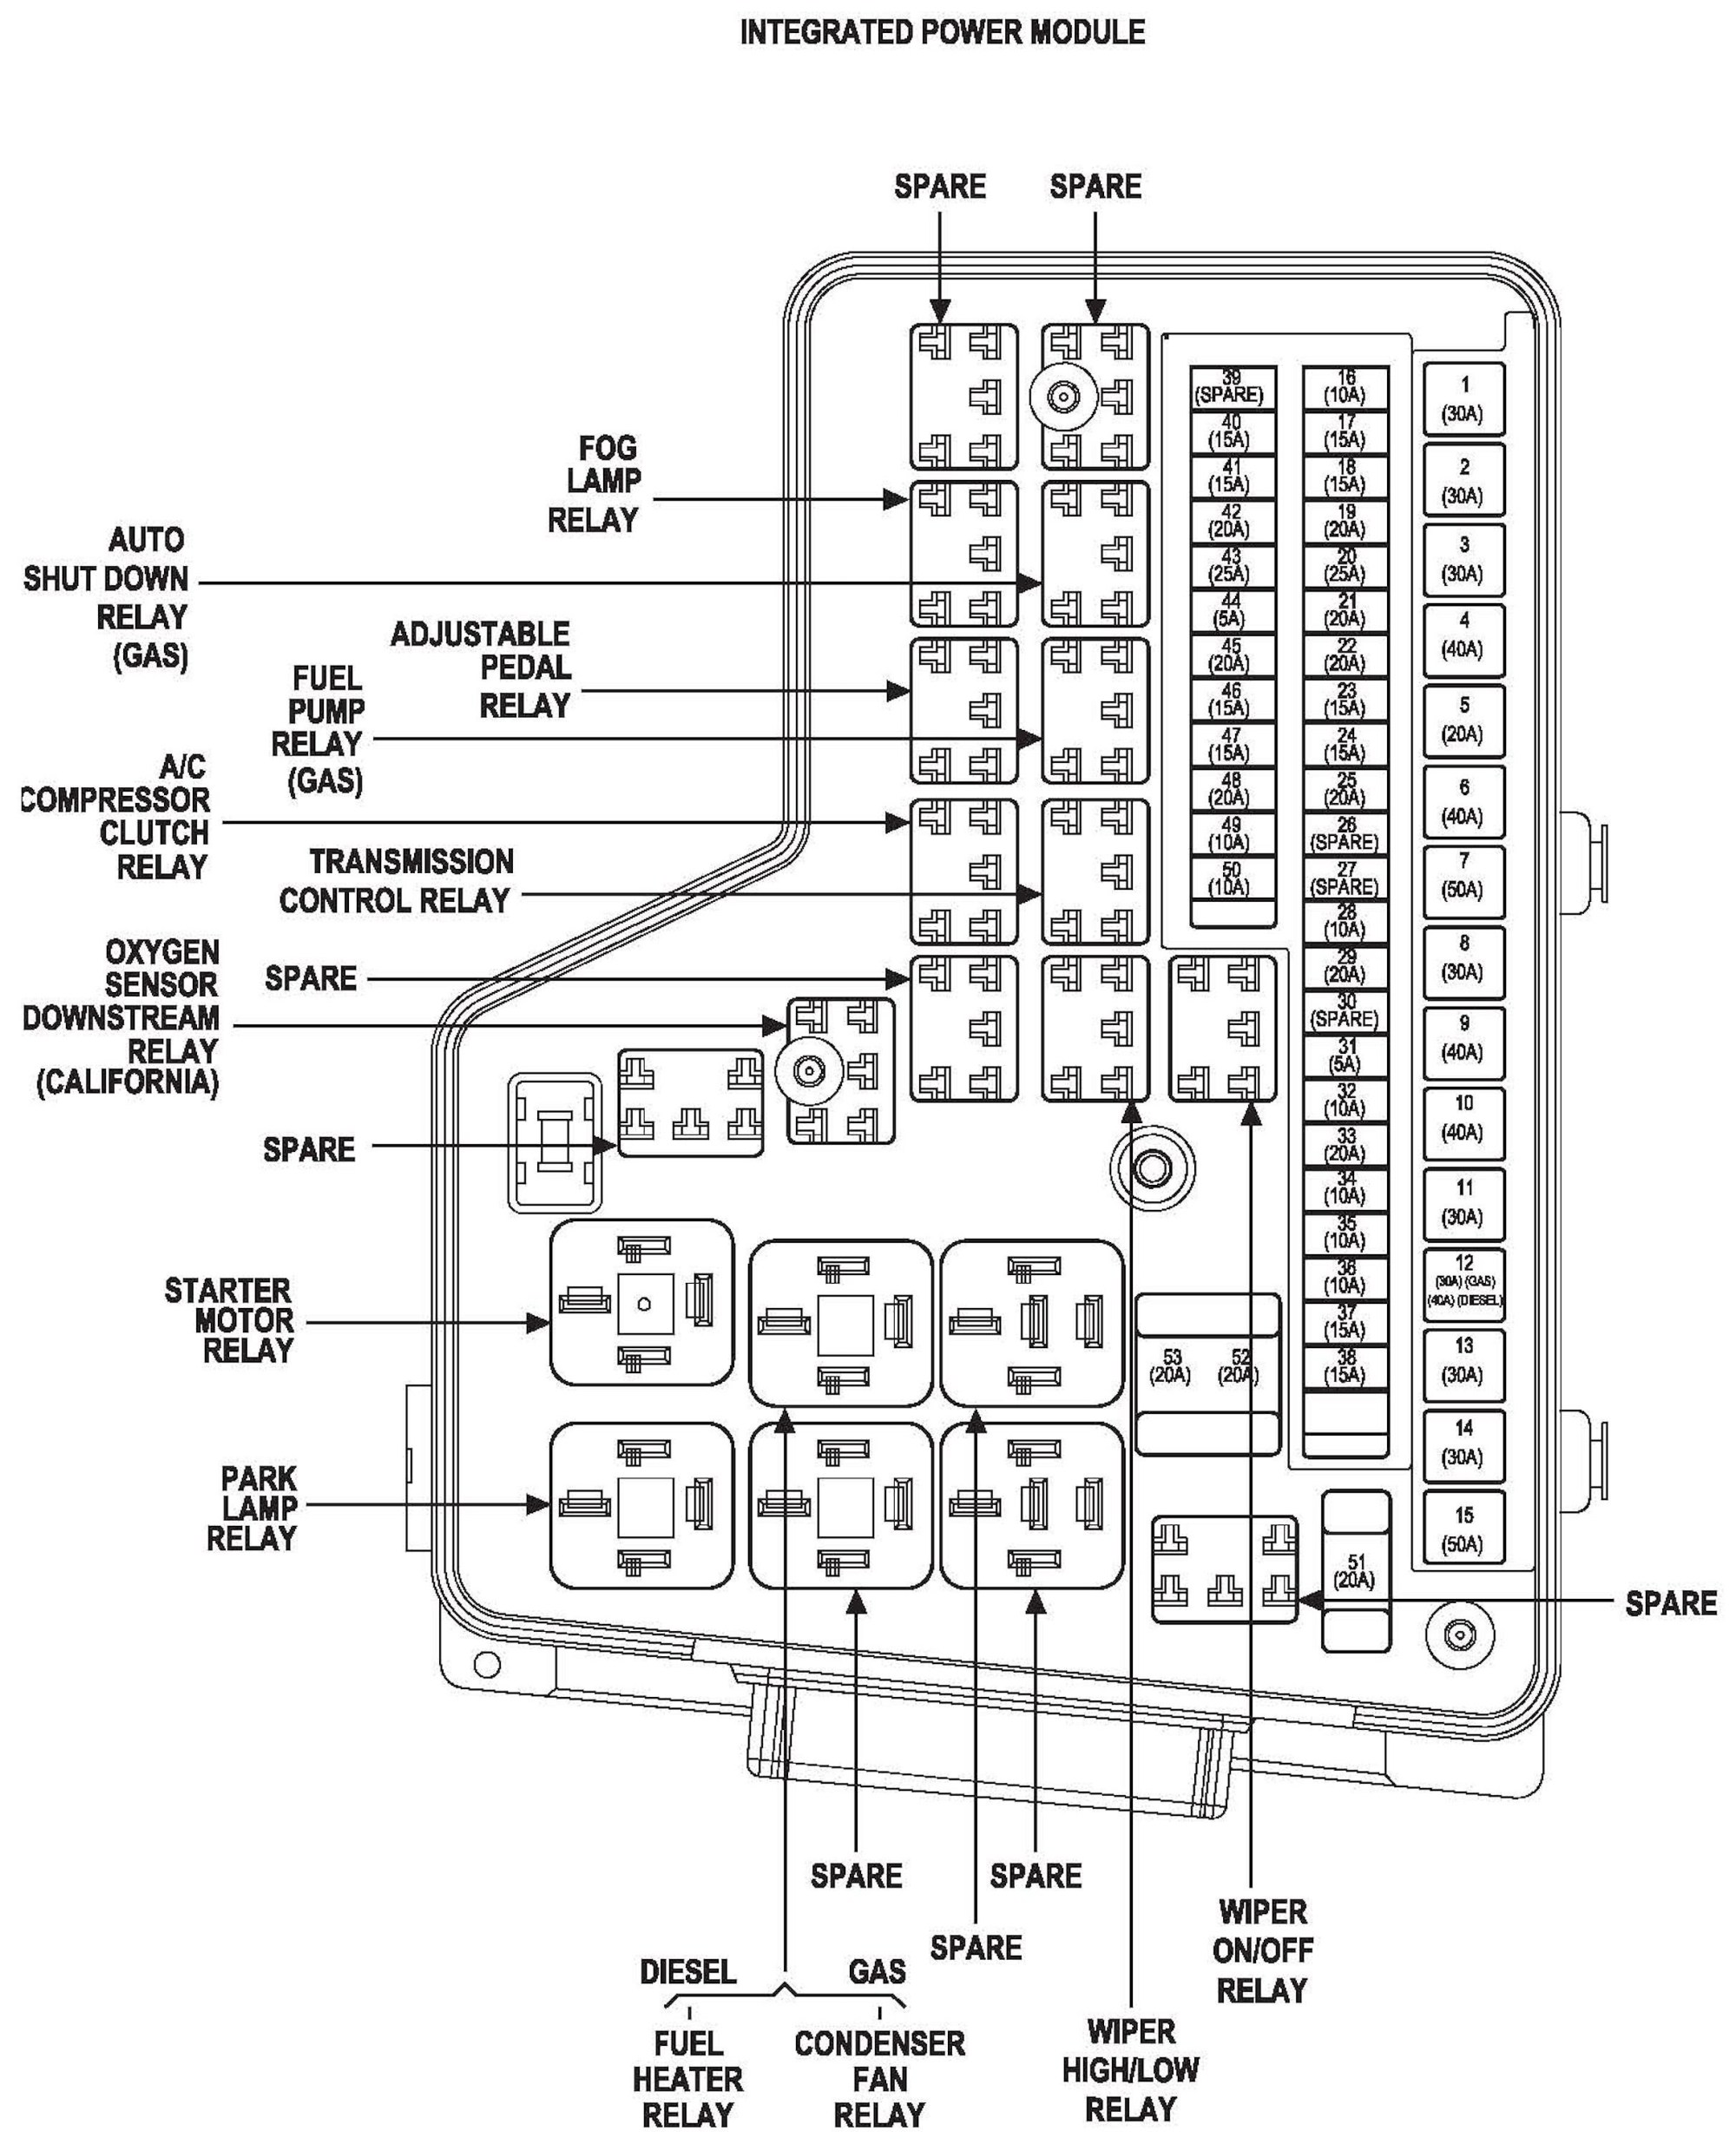 hight resolution of 2003 dodge ram fuse diagram wiring diagram expert 2003 dodge caravan fuse box 2003 dodge fuse box